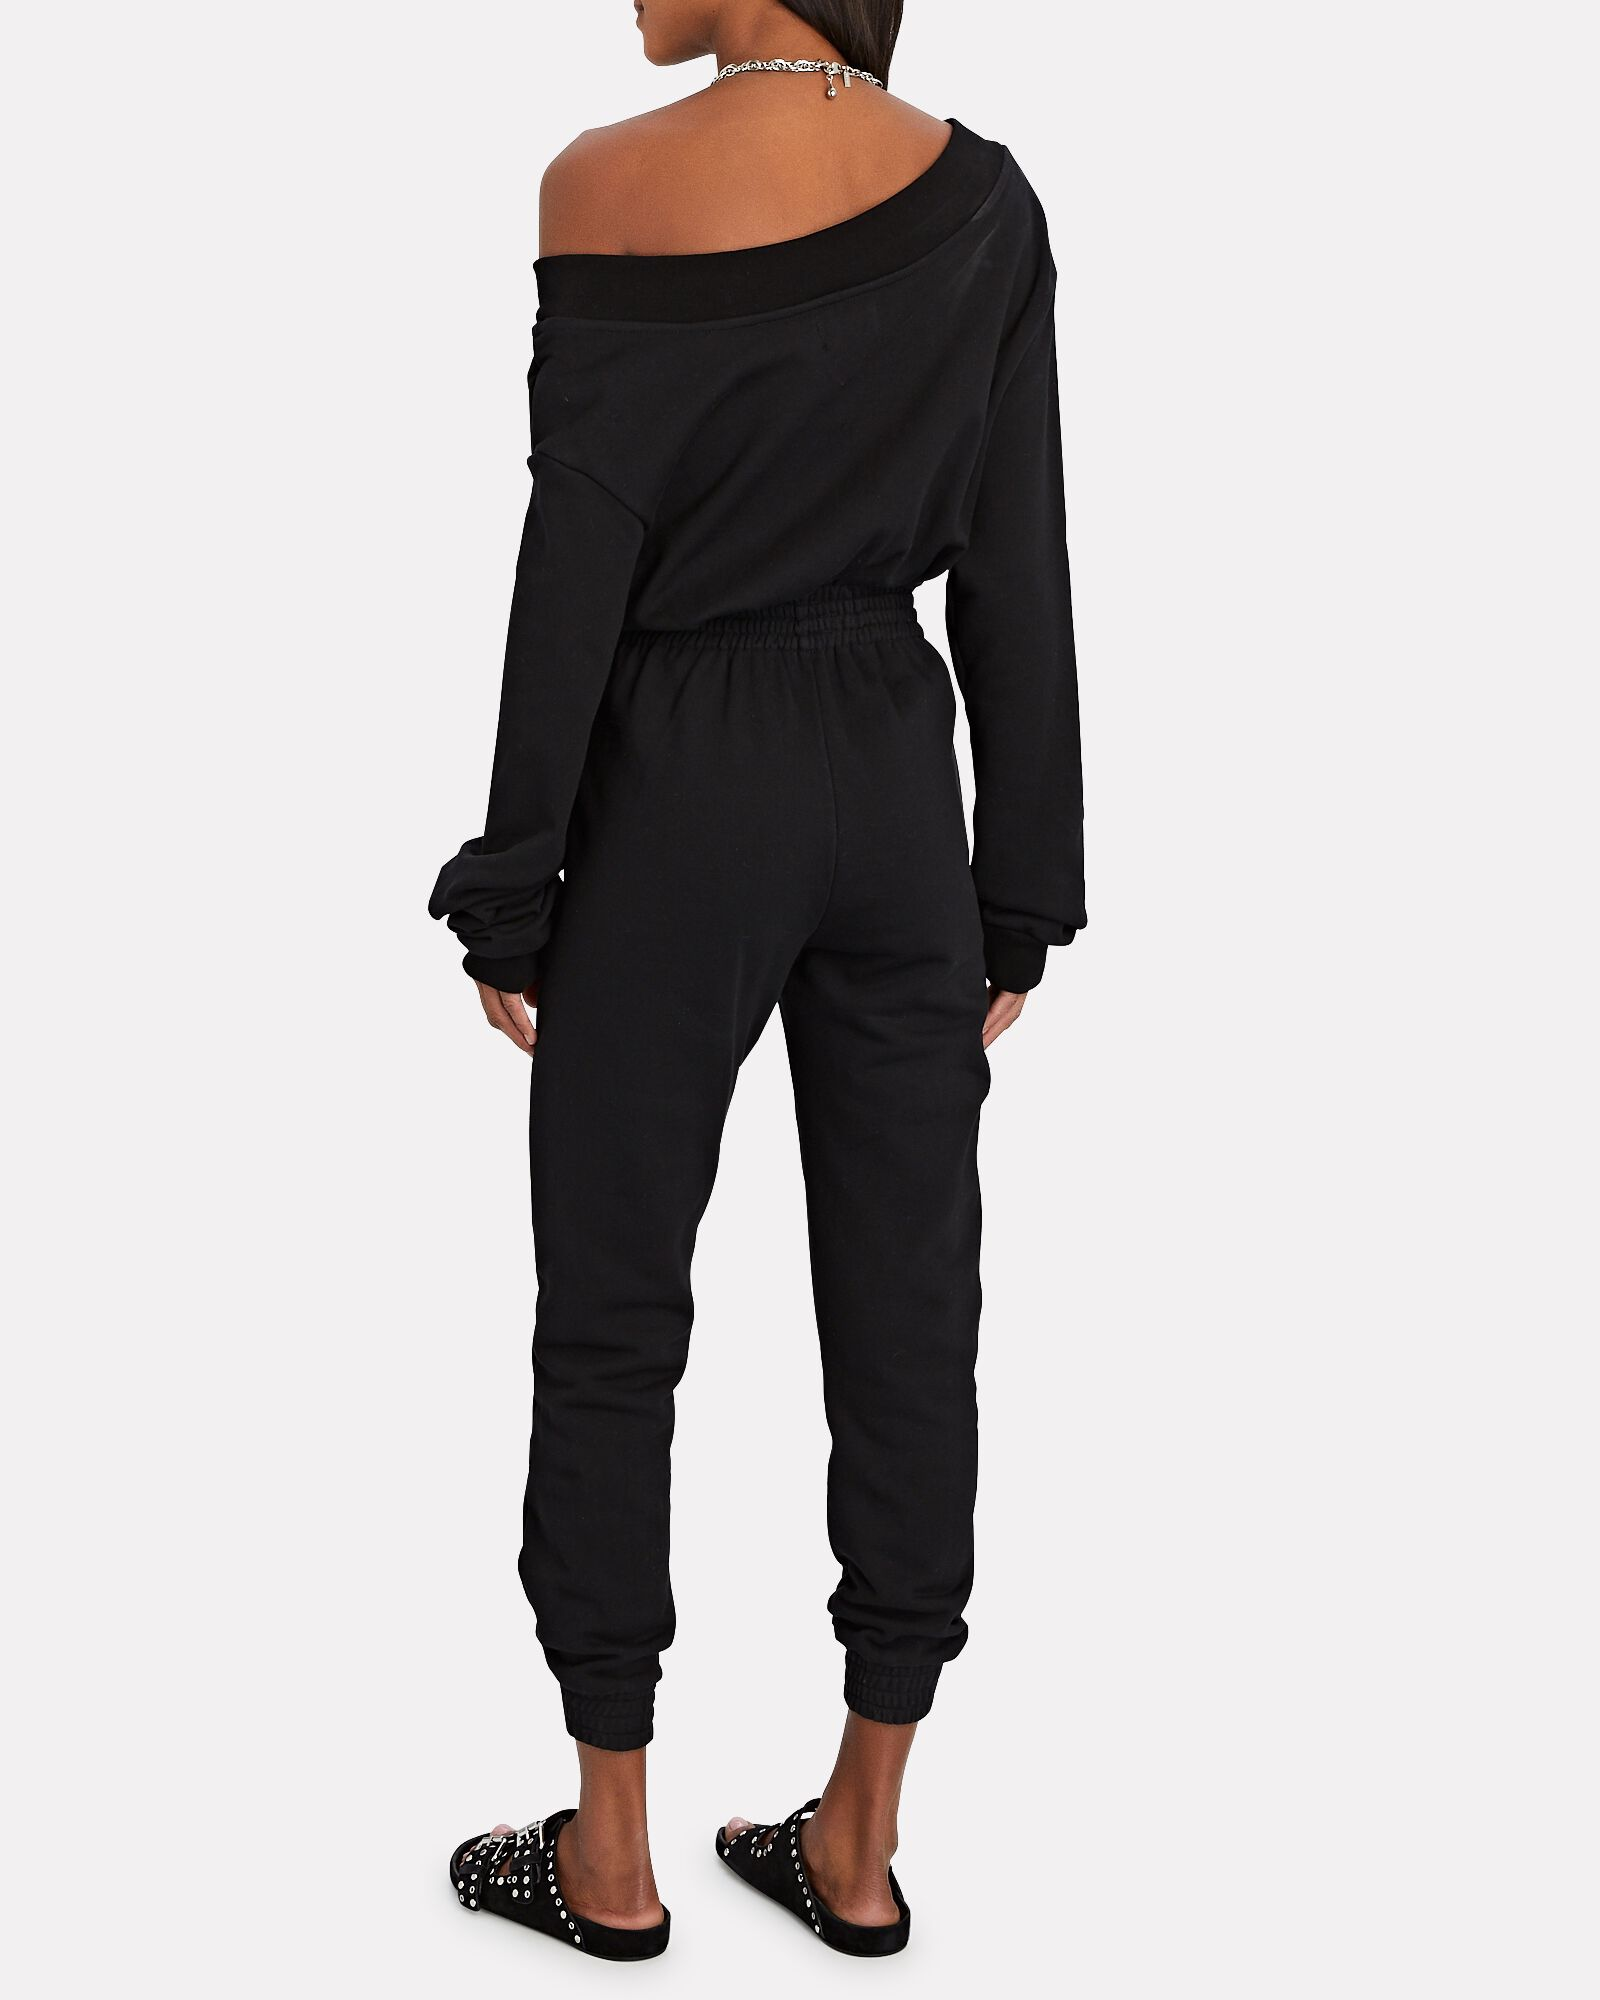 Giovanni Terry Off-the-Shoulder Jumpsuit, BLACK, hi-res